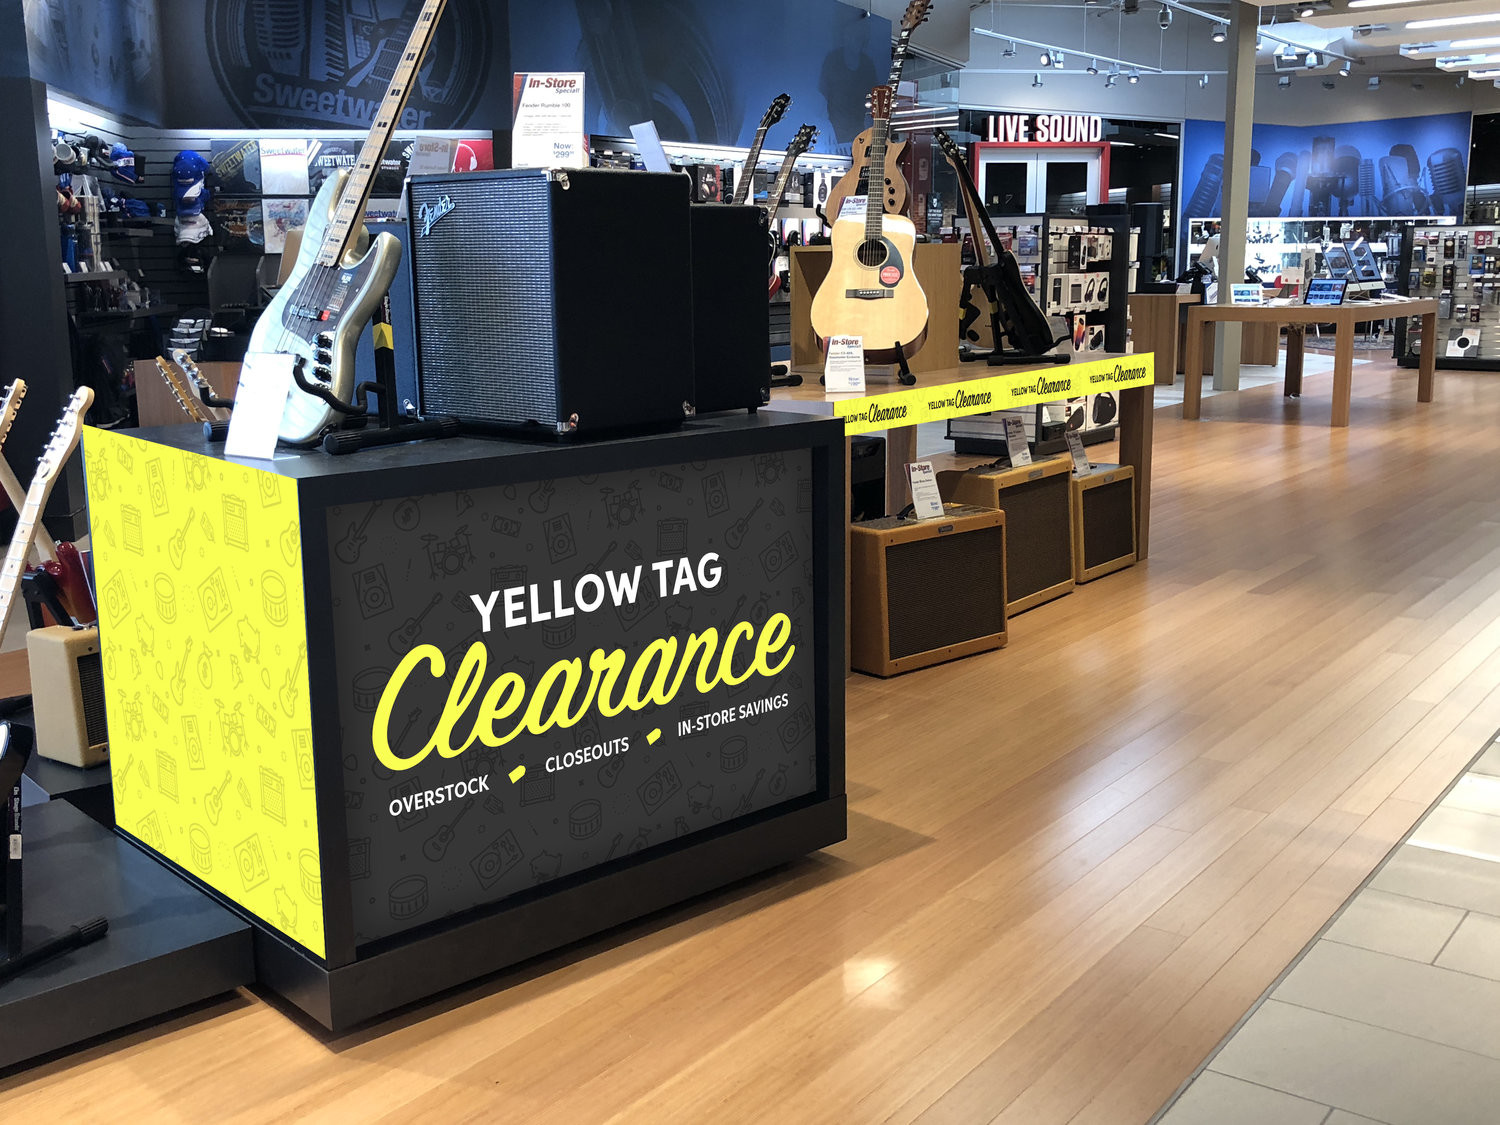 hardwood flooring store burlington of yellow tag clearance claire zettl intended for store island display